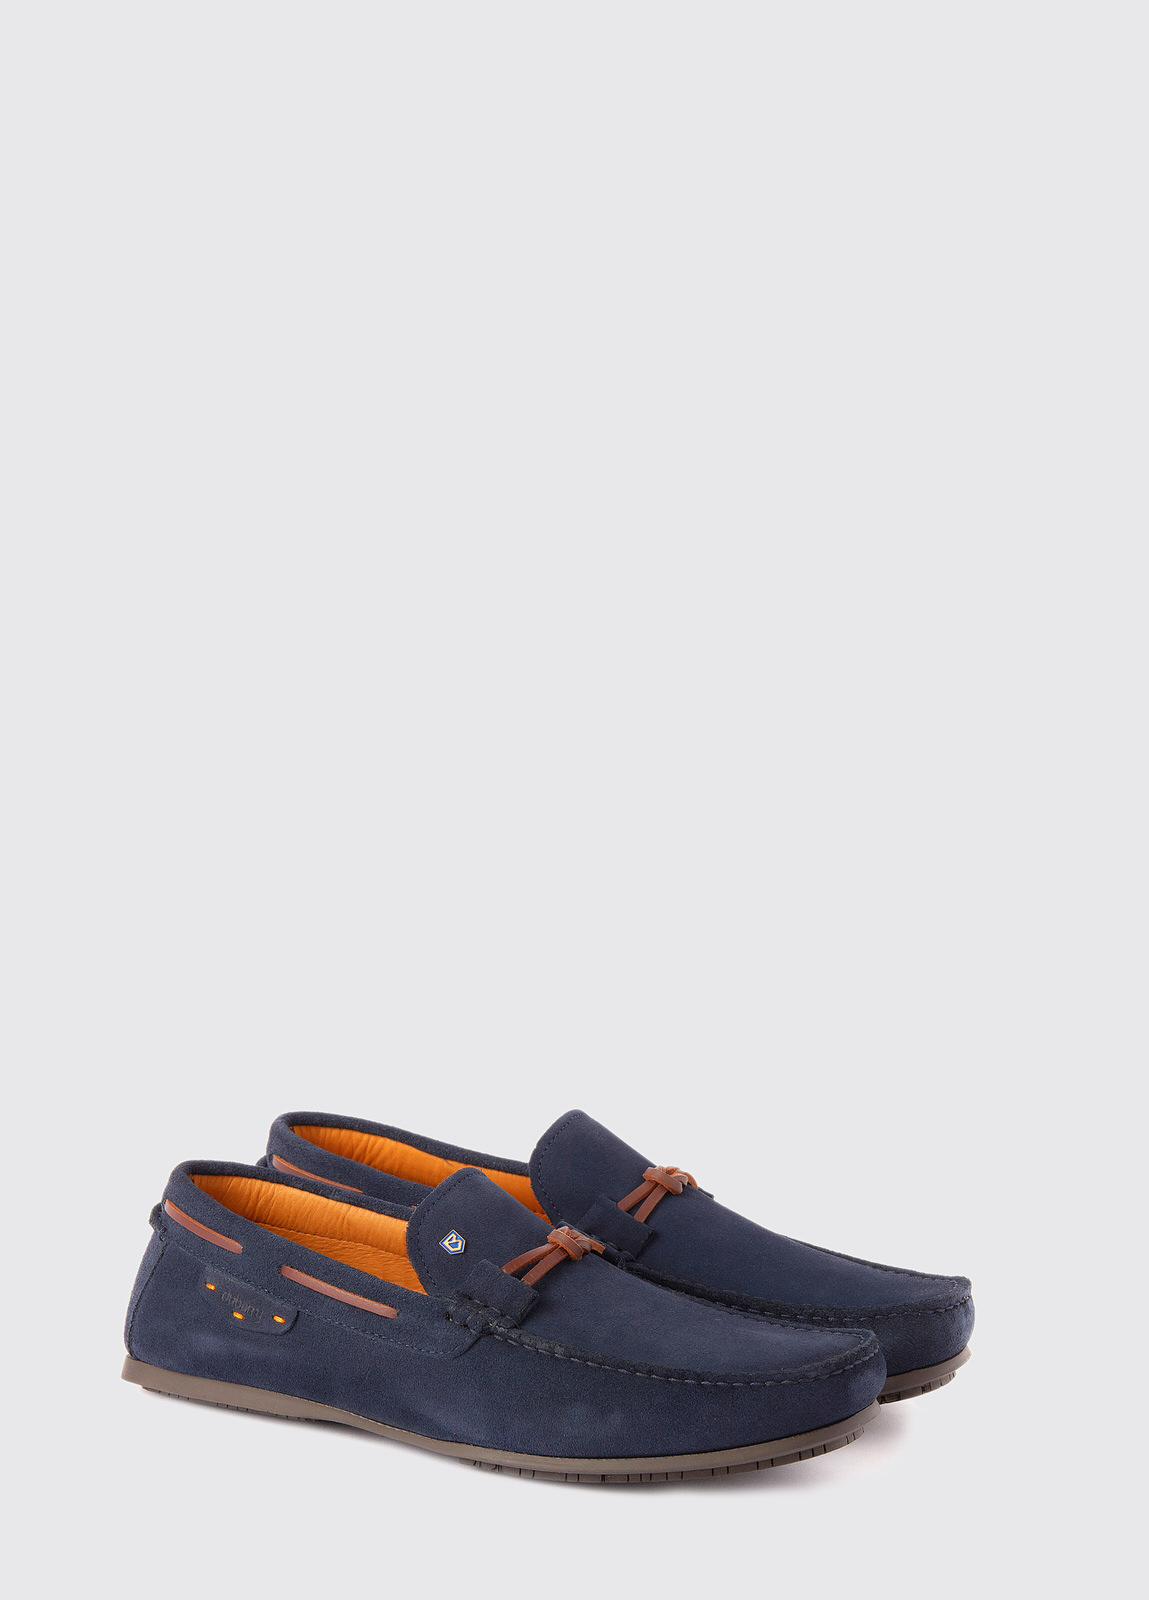 Voyager Deck shoes - French Navy